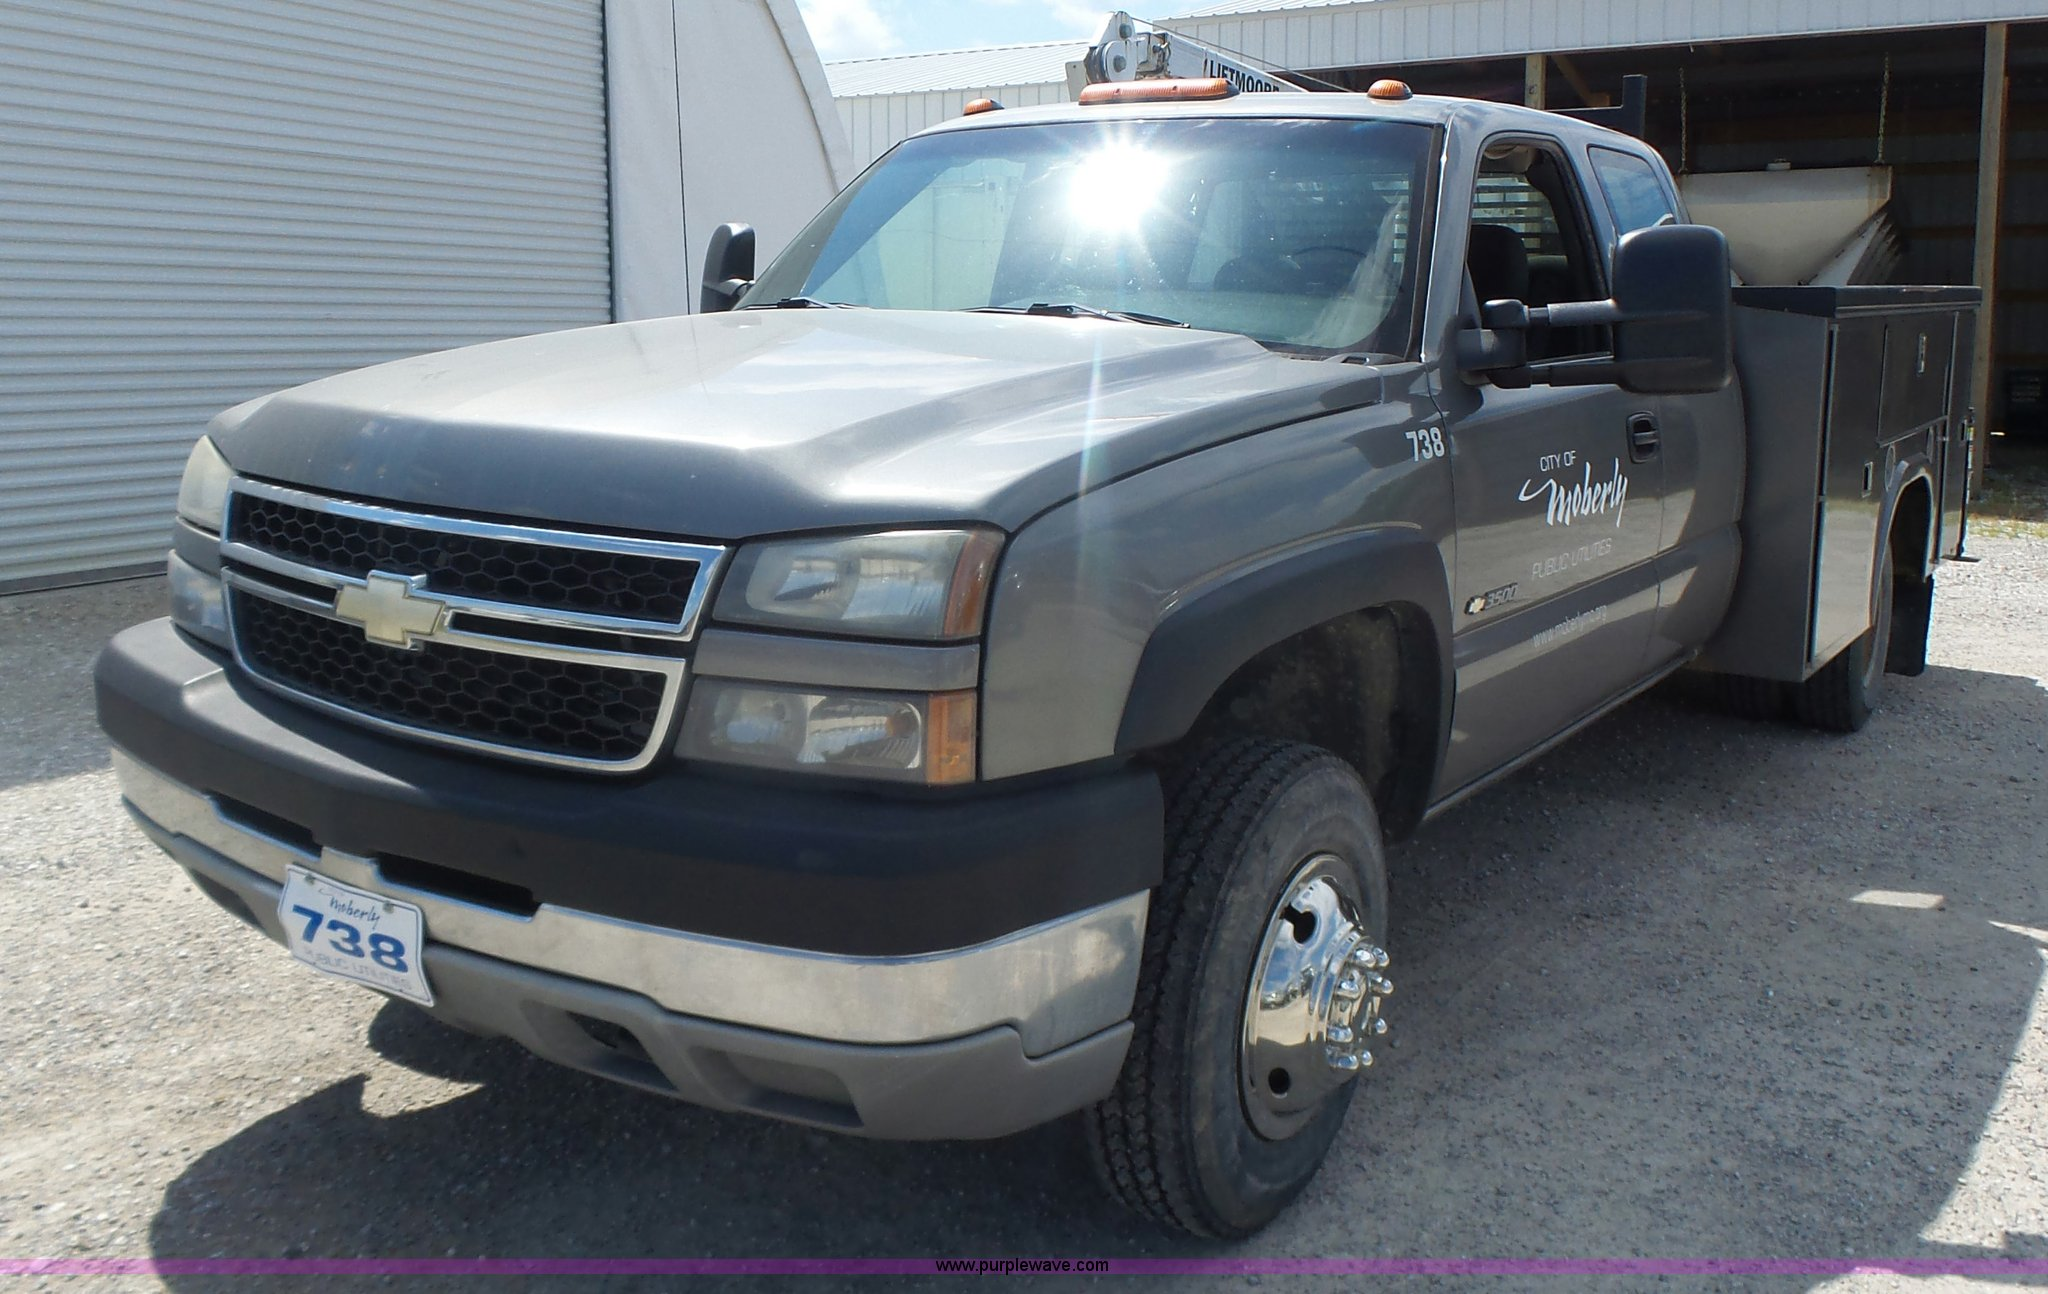 2006 chevrolet silverado 3500 ext cab utility truck with crane full size in new window